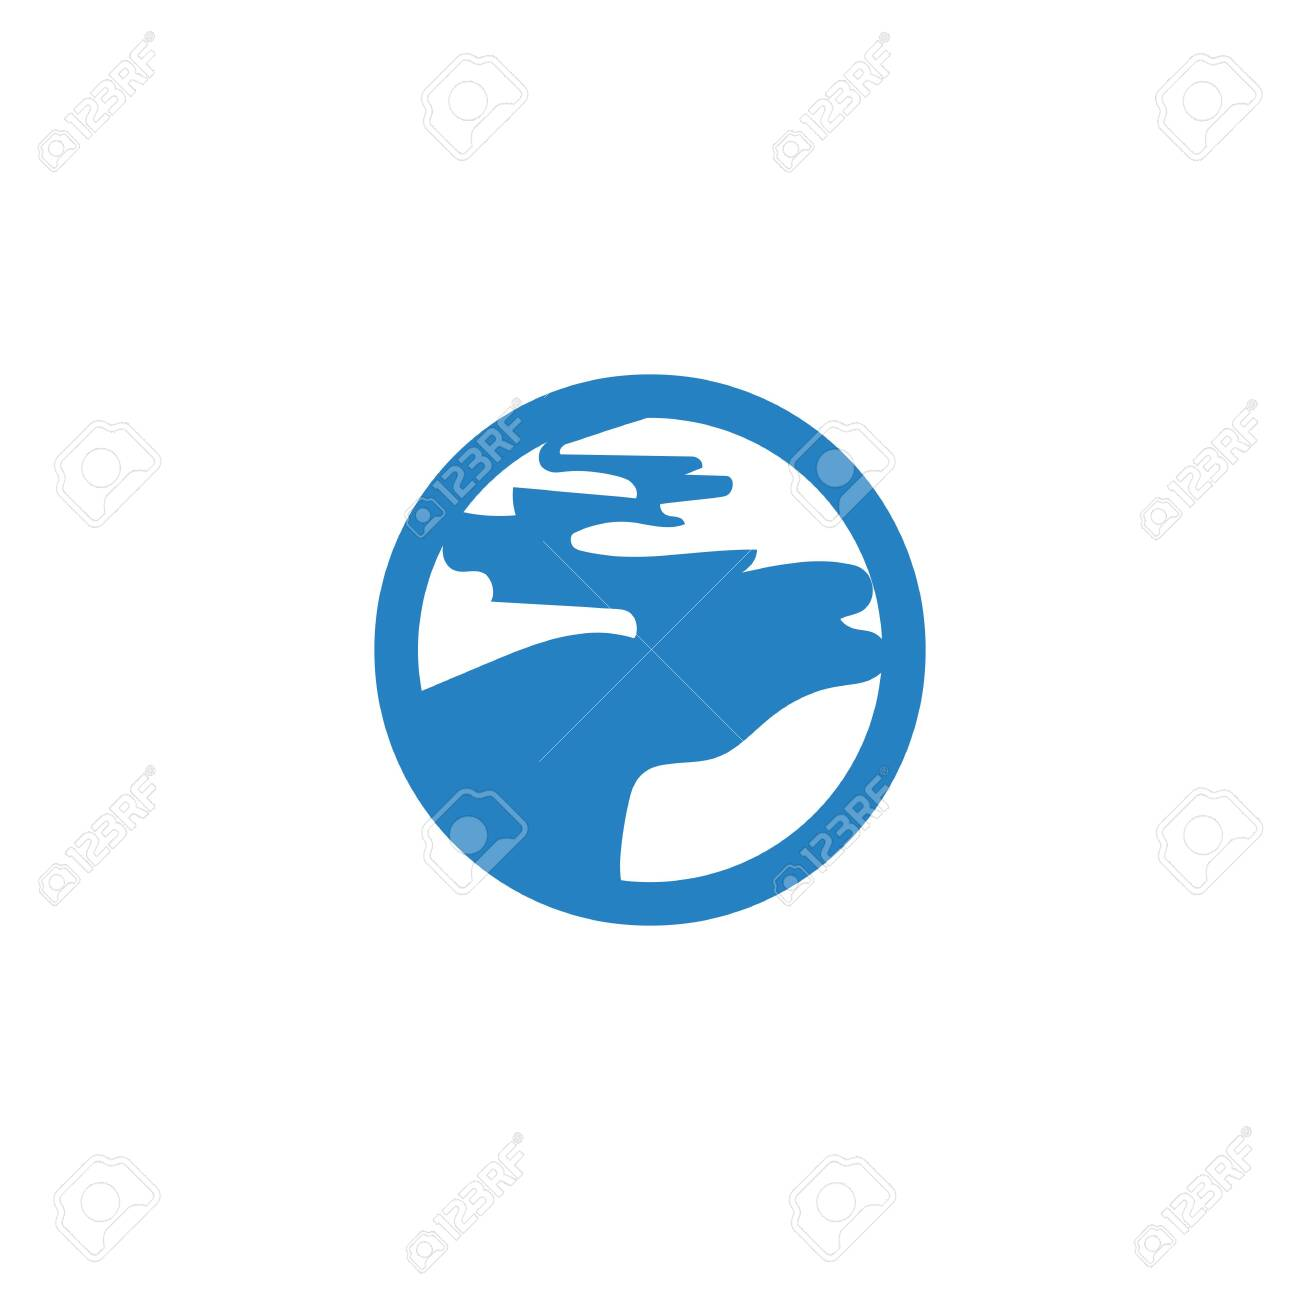 river vector icon illustration design royalty free cliparts vectors and stock illustration image 140698084 123rf com